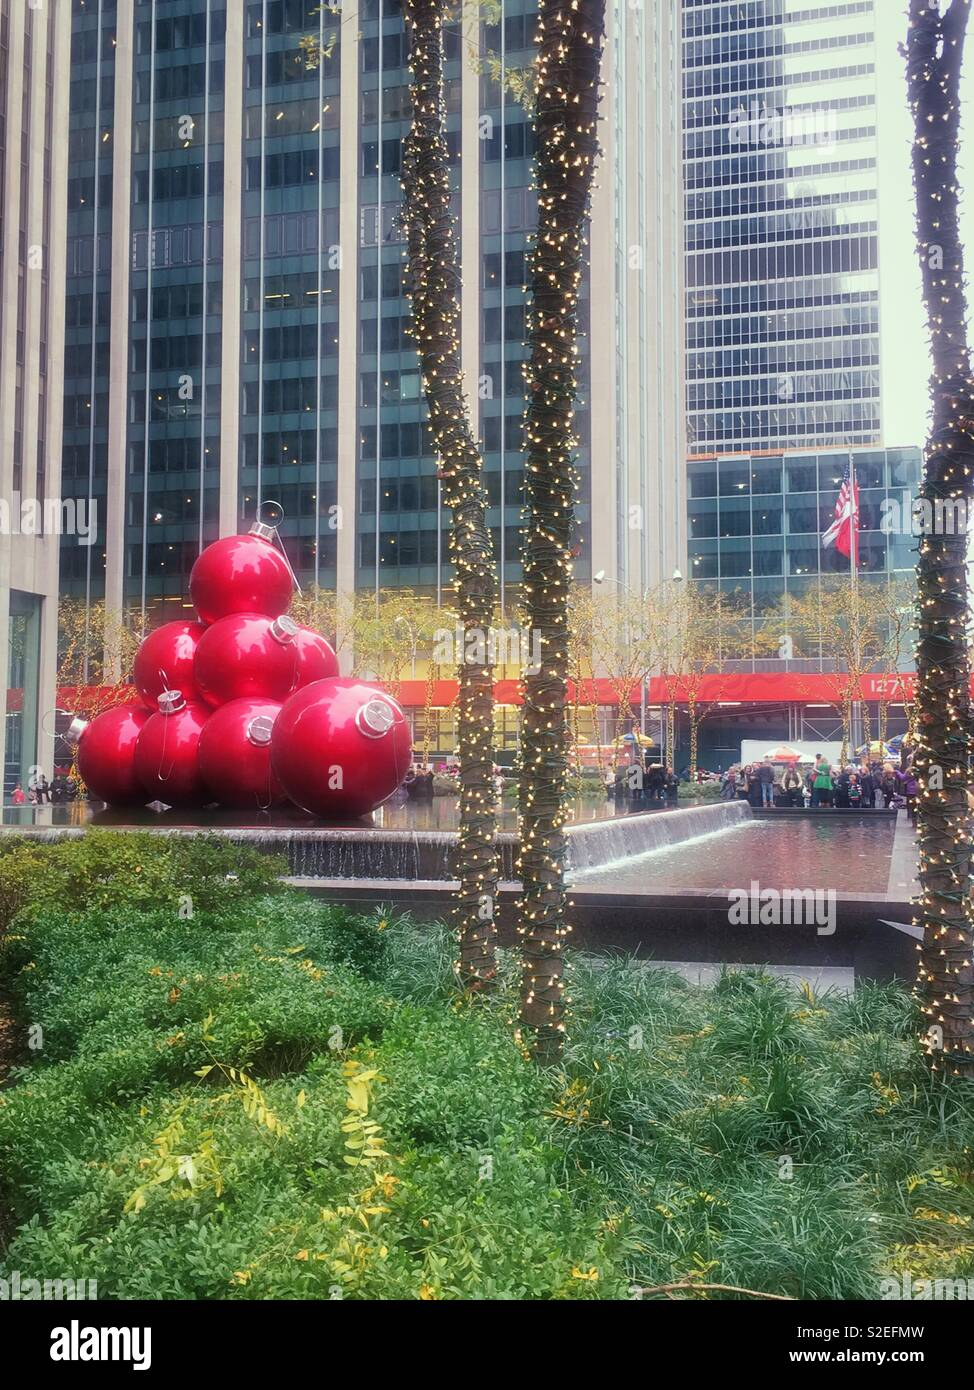 Giant Christmas tree ornament display on Avenue of the Americas during the holiday season, New York City, United States Stock Photo